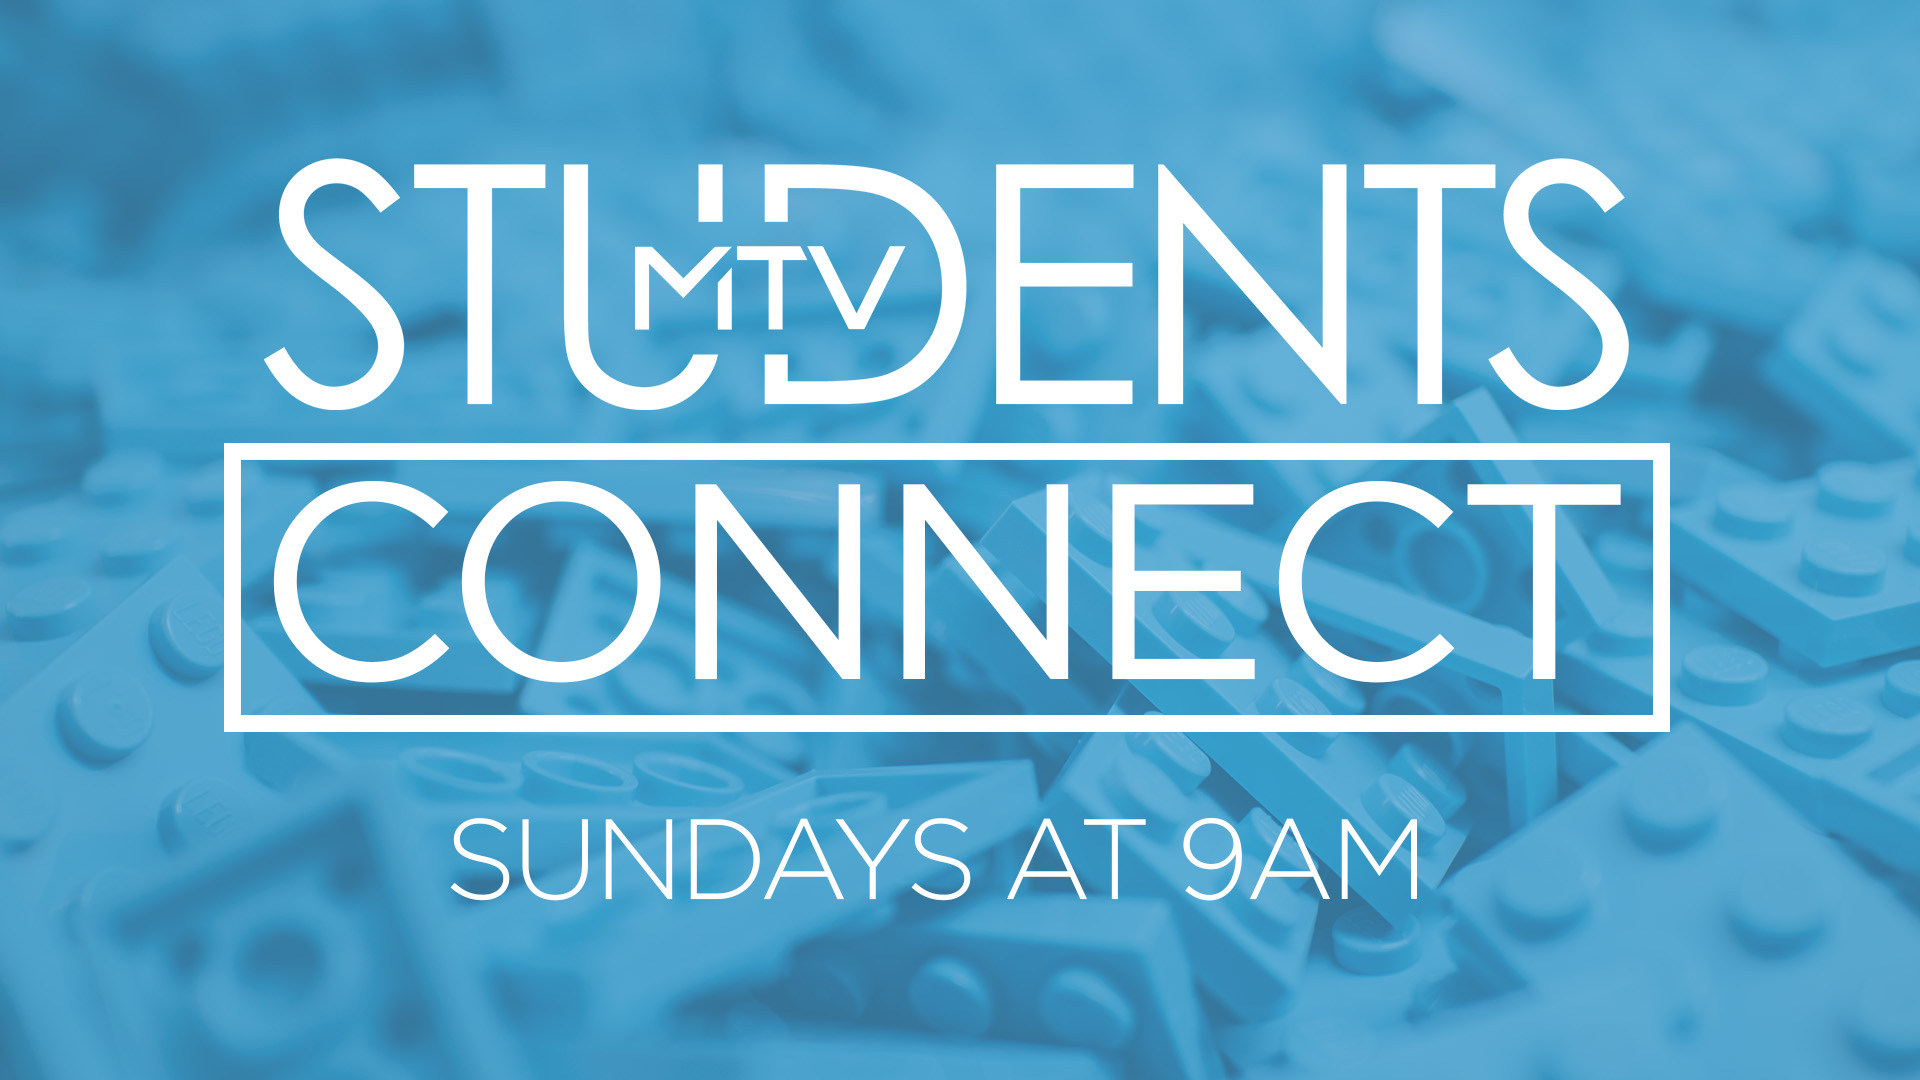 CONNECT IS A SERVICE DESIGNED FOR STUDENTS IN GRADES 6TH - 12TH. STUDENTS WILL LEARN OVER EIGHT WEEKS; THE FOUNDATIONS OF THEIR FAITH, DISCOVER HOW GOD HAS WIRED THEM AND FIND THEIR PLACE TO SERVE AT MTVchurch.